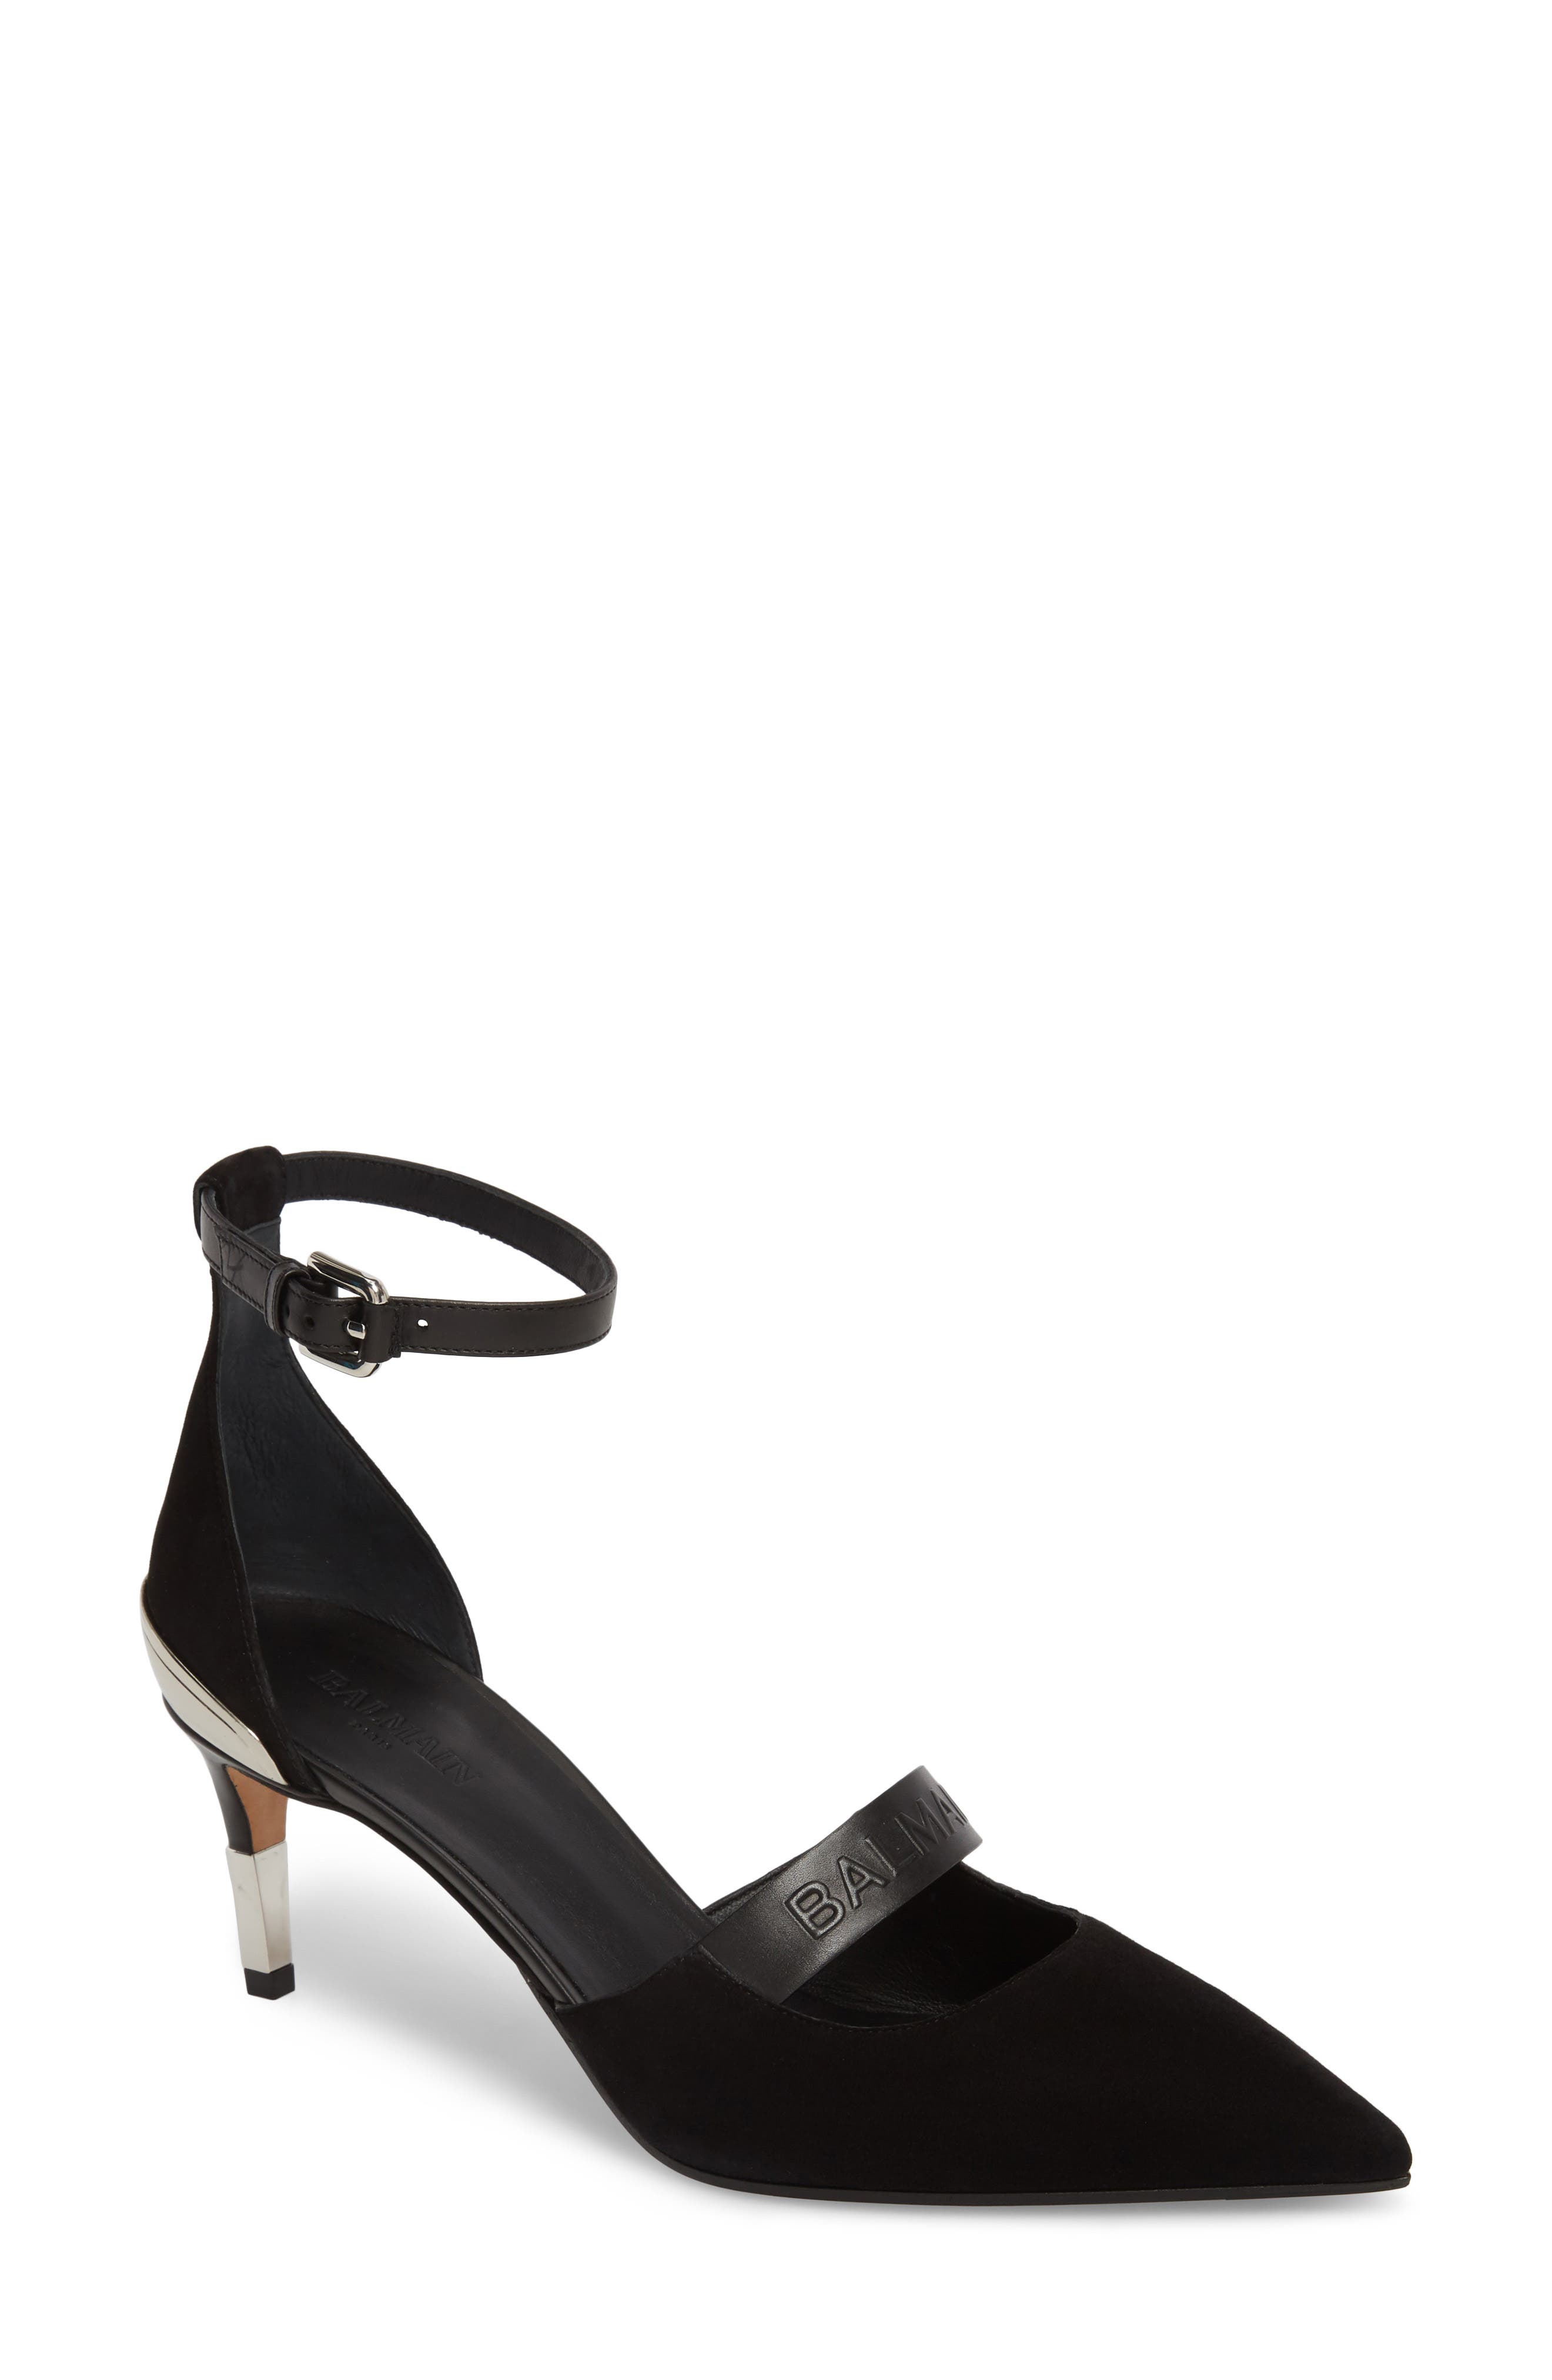 Chance Ankle Strap Pointy Toe Pump,                             Main thumbnail 1, color,                             001